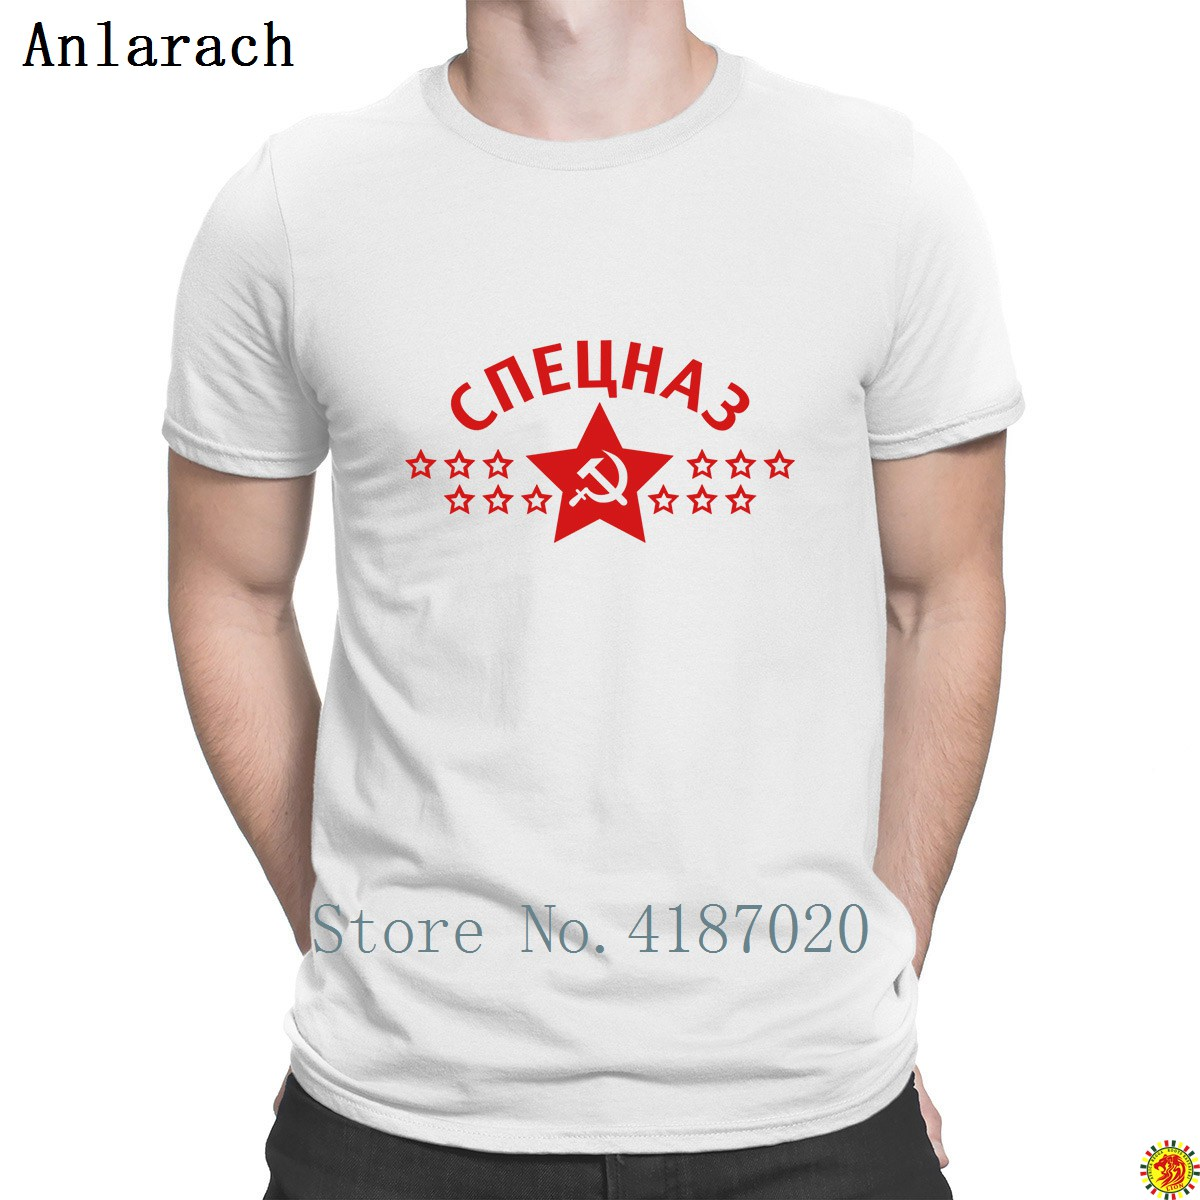 Specnaz Russia Ussr Hammer And Sickle Tshirt Cute Novelty Spring Autumn New Tshirt For Men 100% Cotton Creative Hip Hop T-shirts Men's Clothing